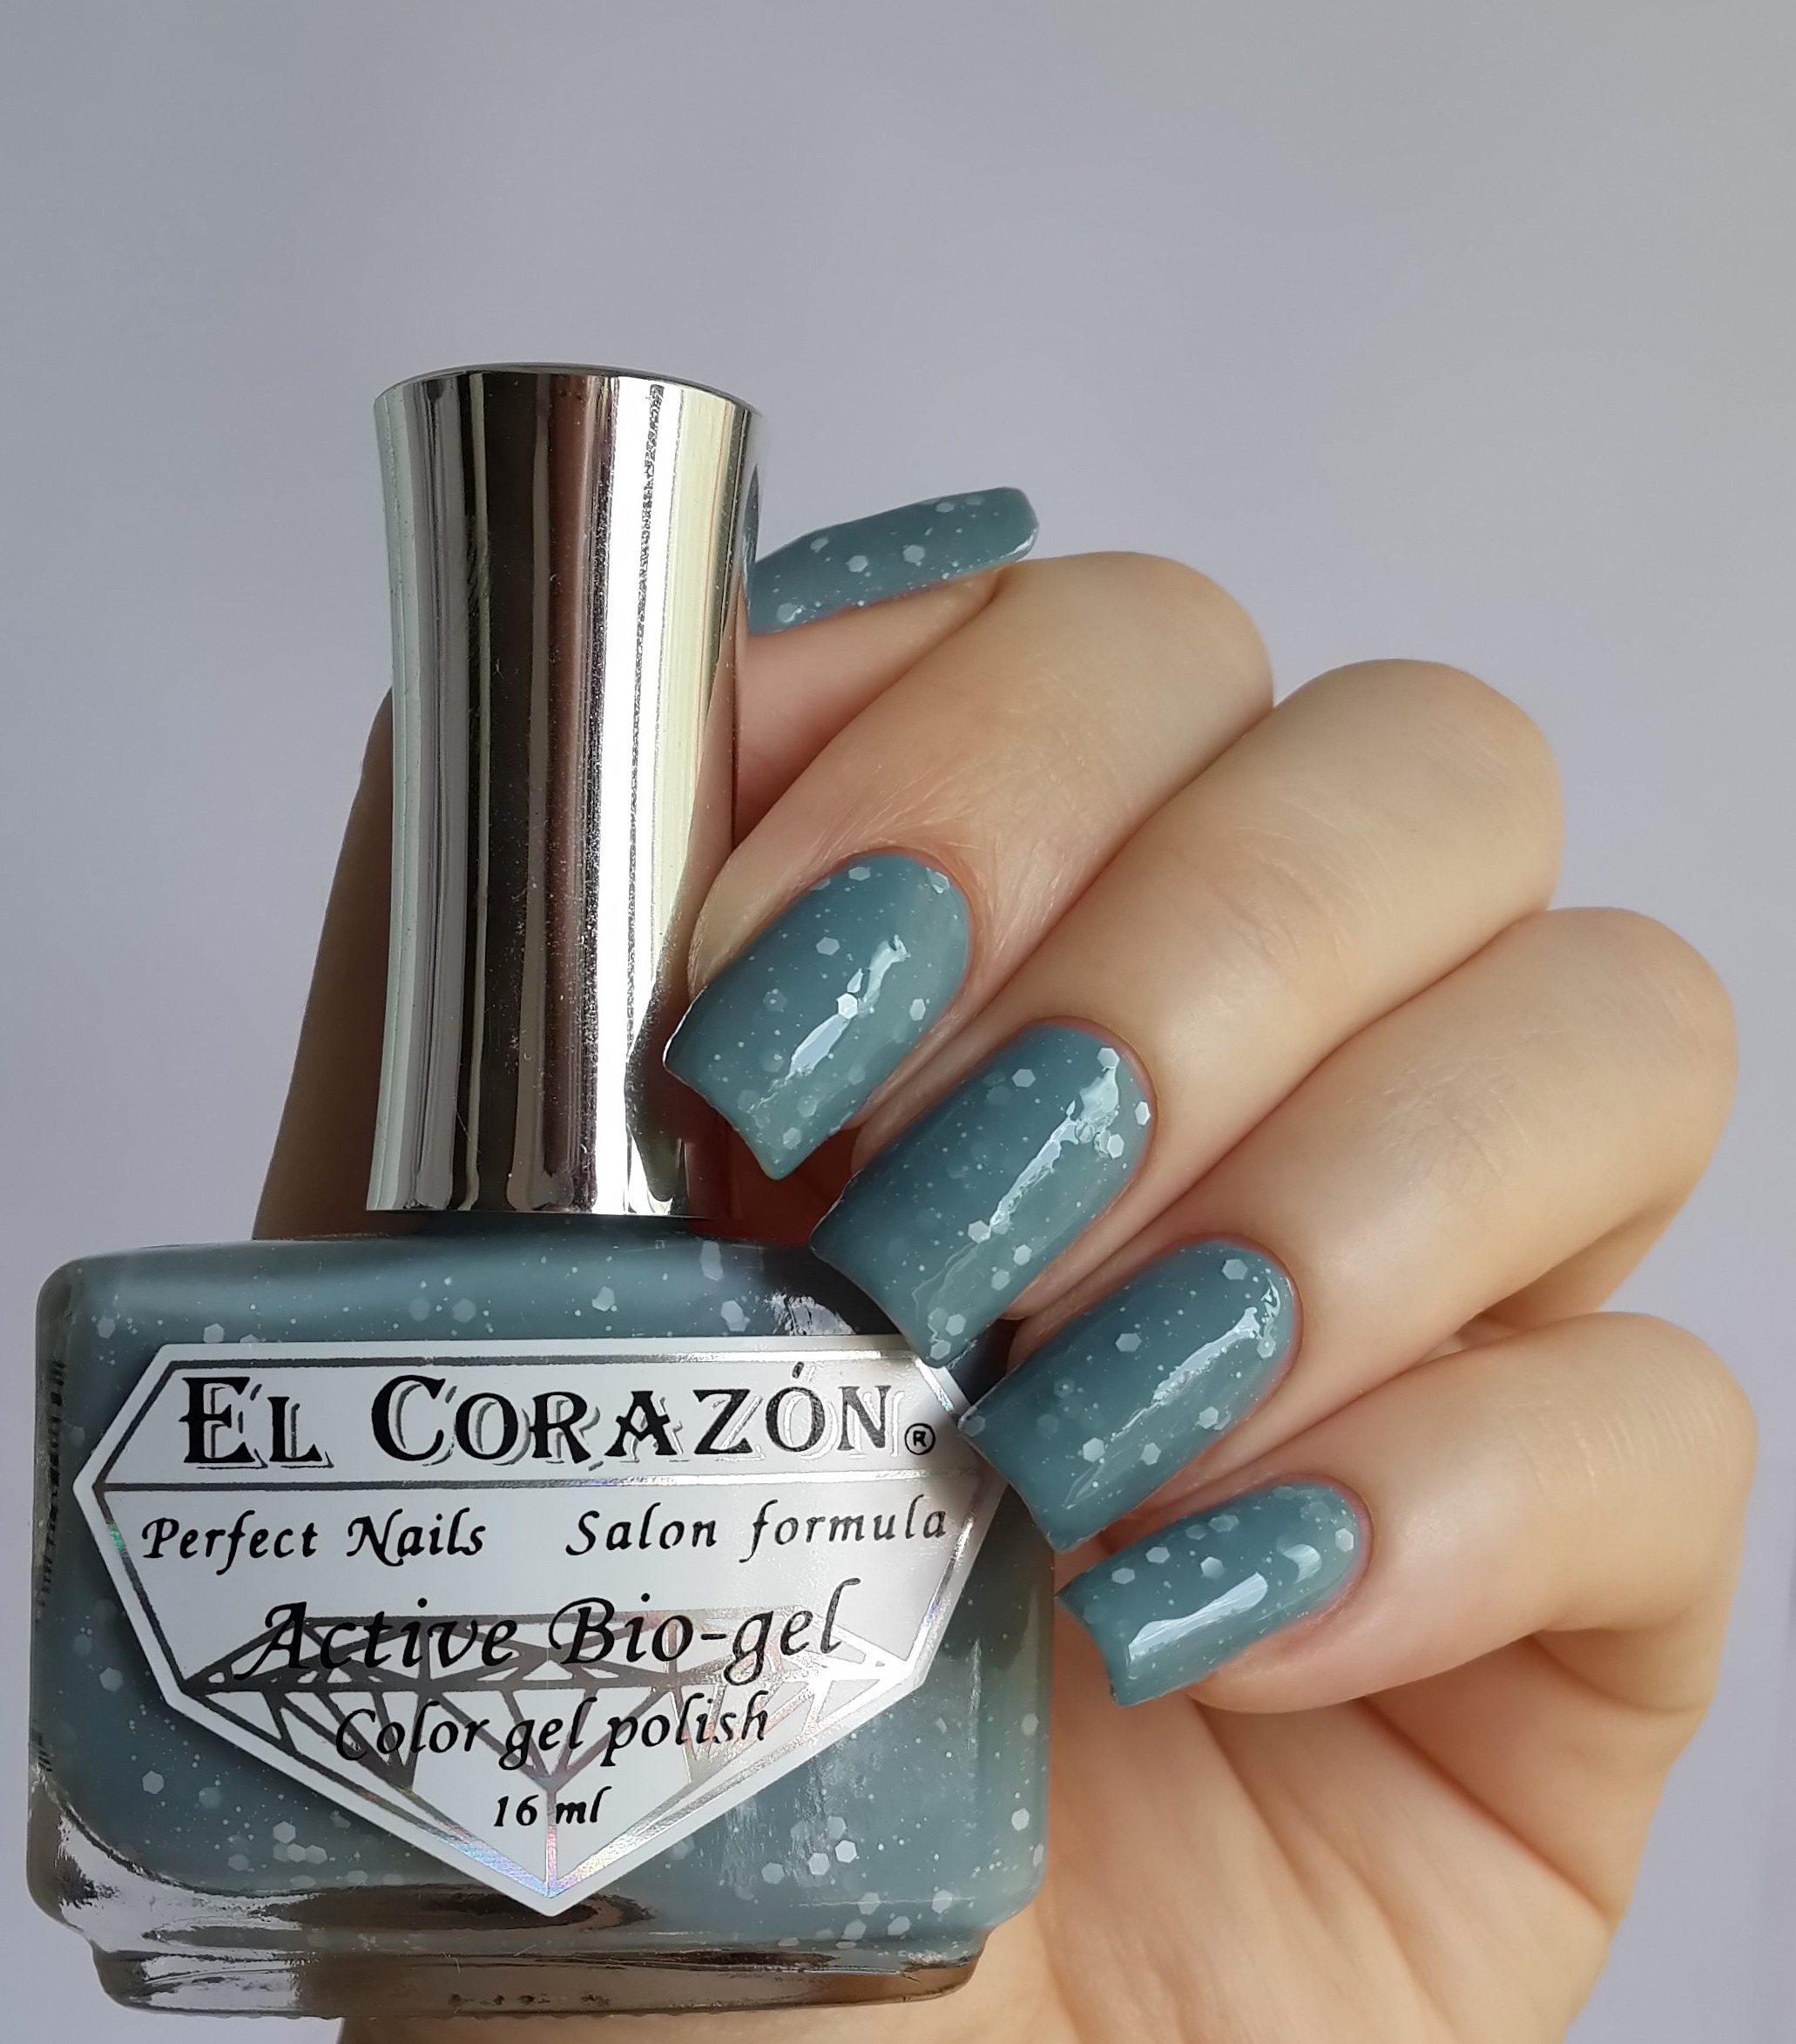 EL Corazon Active Bio-gel Color gel polish Fashion girl in the Paris №423/213